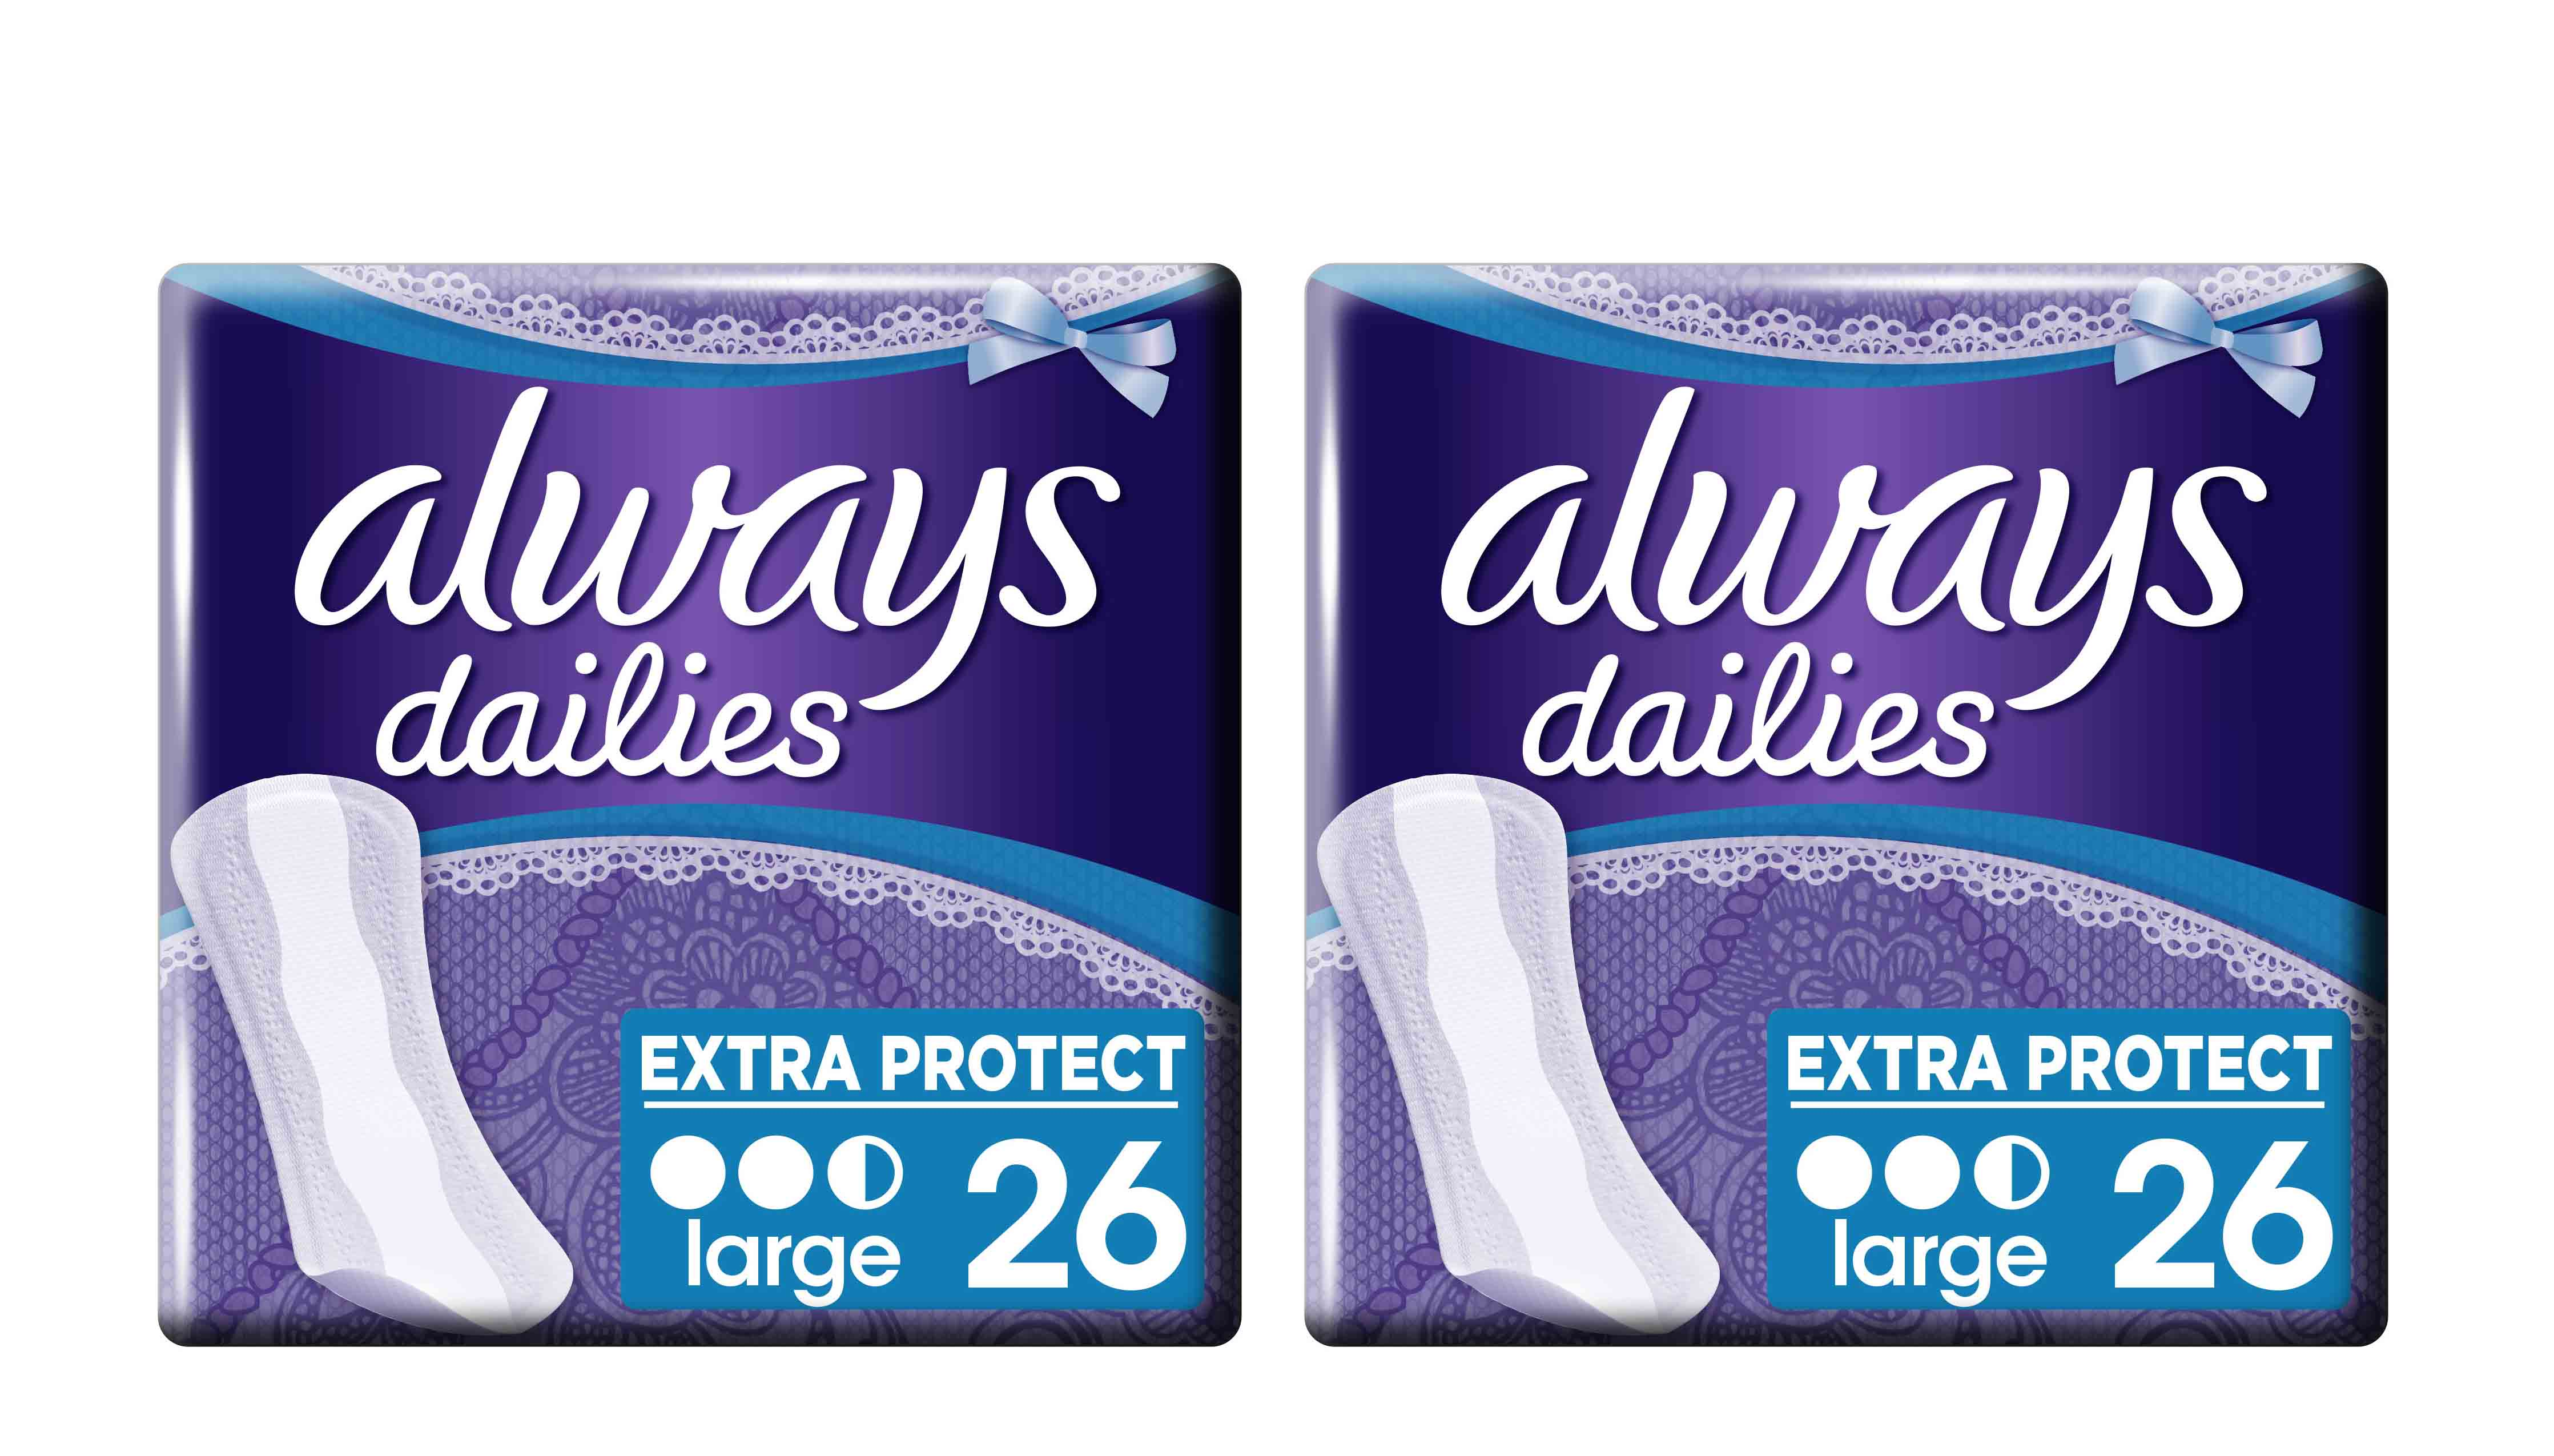 2 x Always Dailies Large Extra Protect (1+1) Σερβιετάκια, 2 x 26 τεμάχια